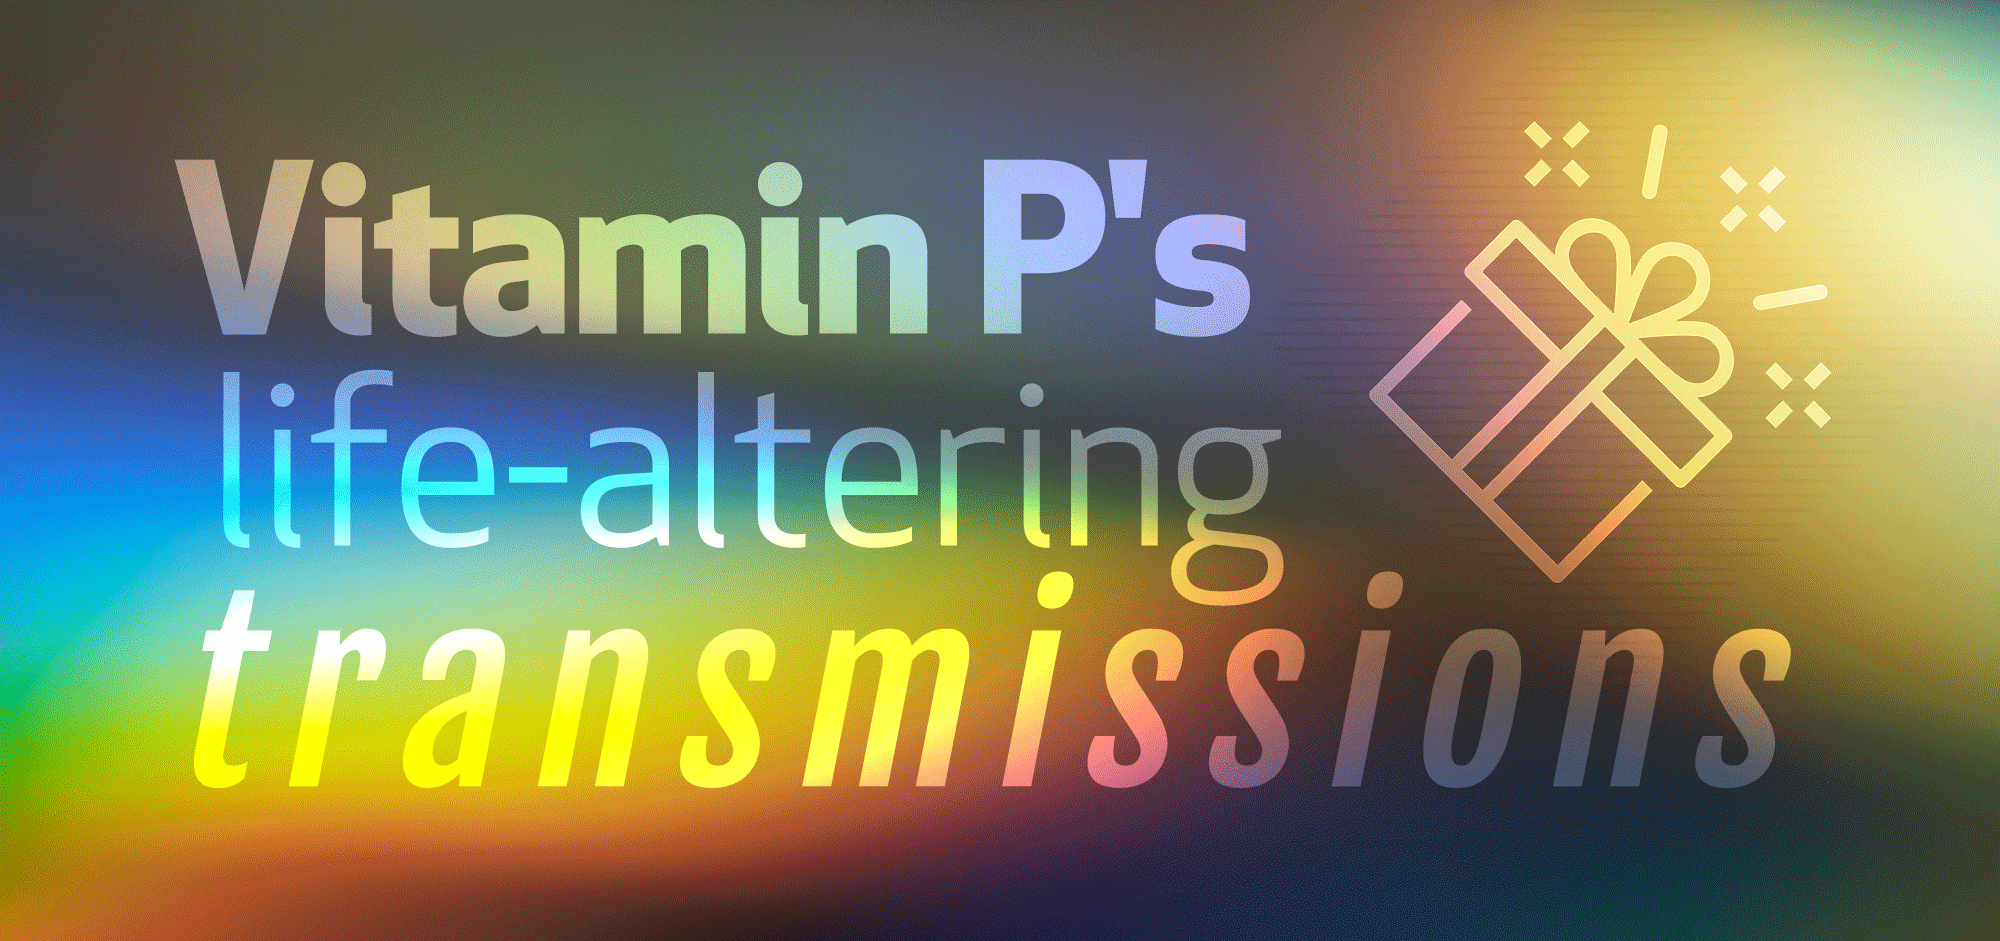 Vitamin-P-Transmissions-Banner.png